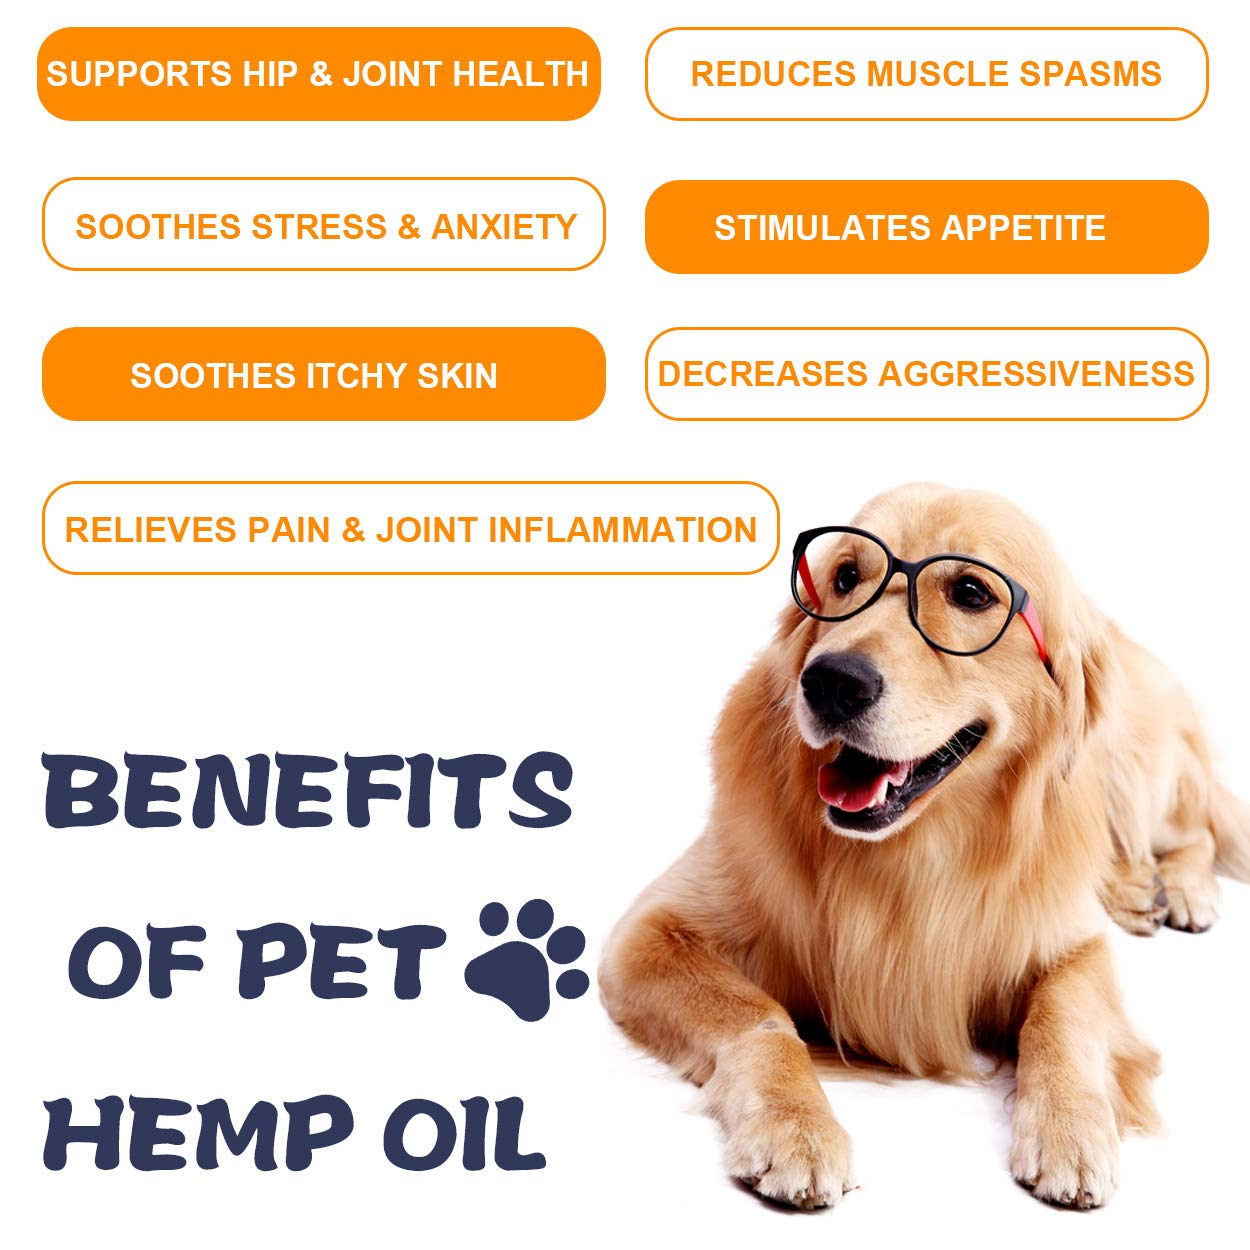 Nevissbags Hemp Oil for Dogs & Cats (3000mg), Pain Anxiety Relief for Pets - 100% Natural Organic Hemp Herbal Extract, Supports Hip & Joint Health - Pet Omega 3, 6, 9 - Made in USA